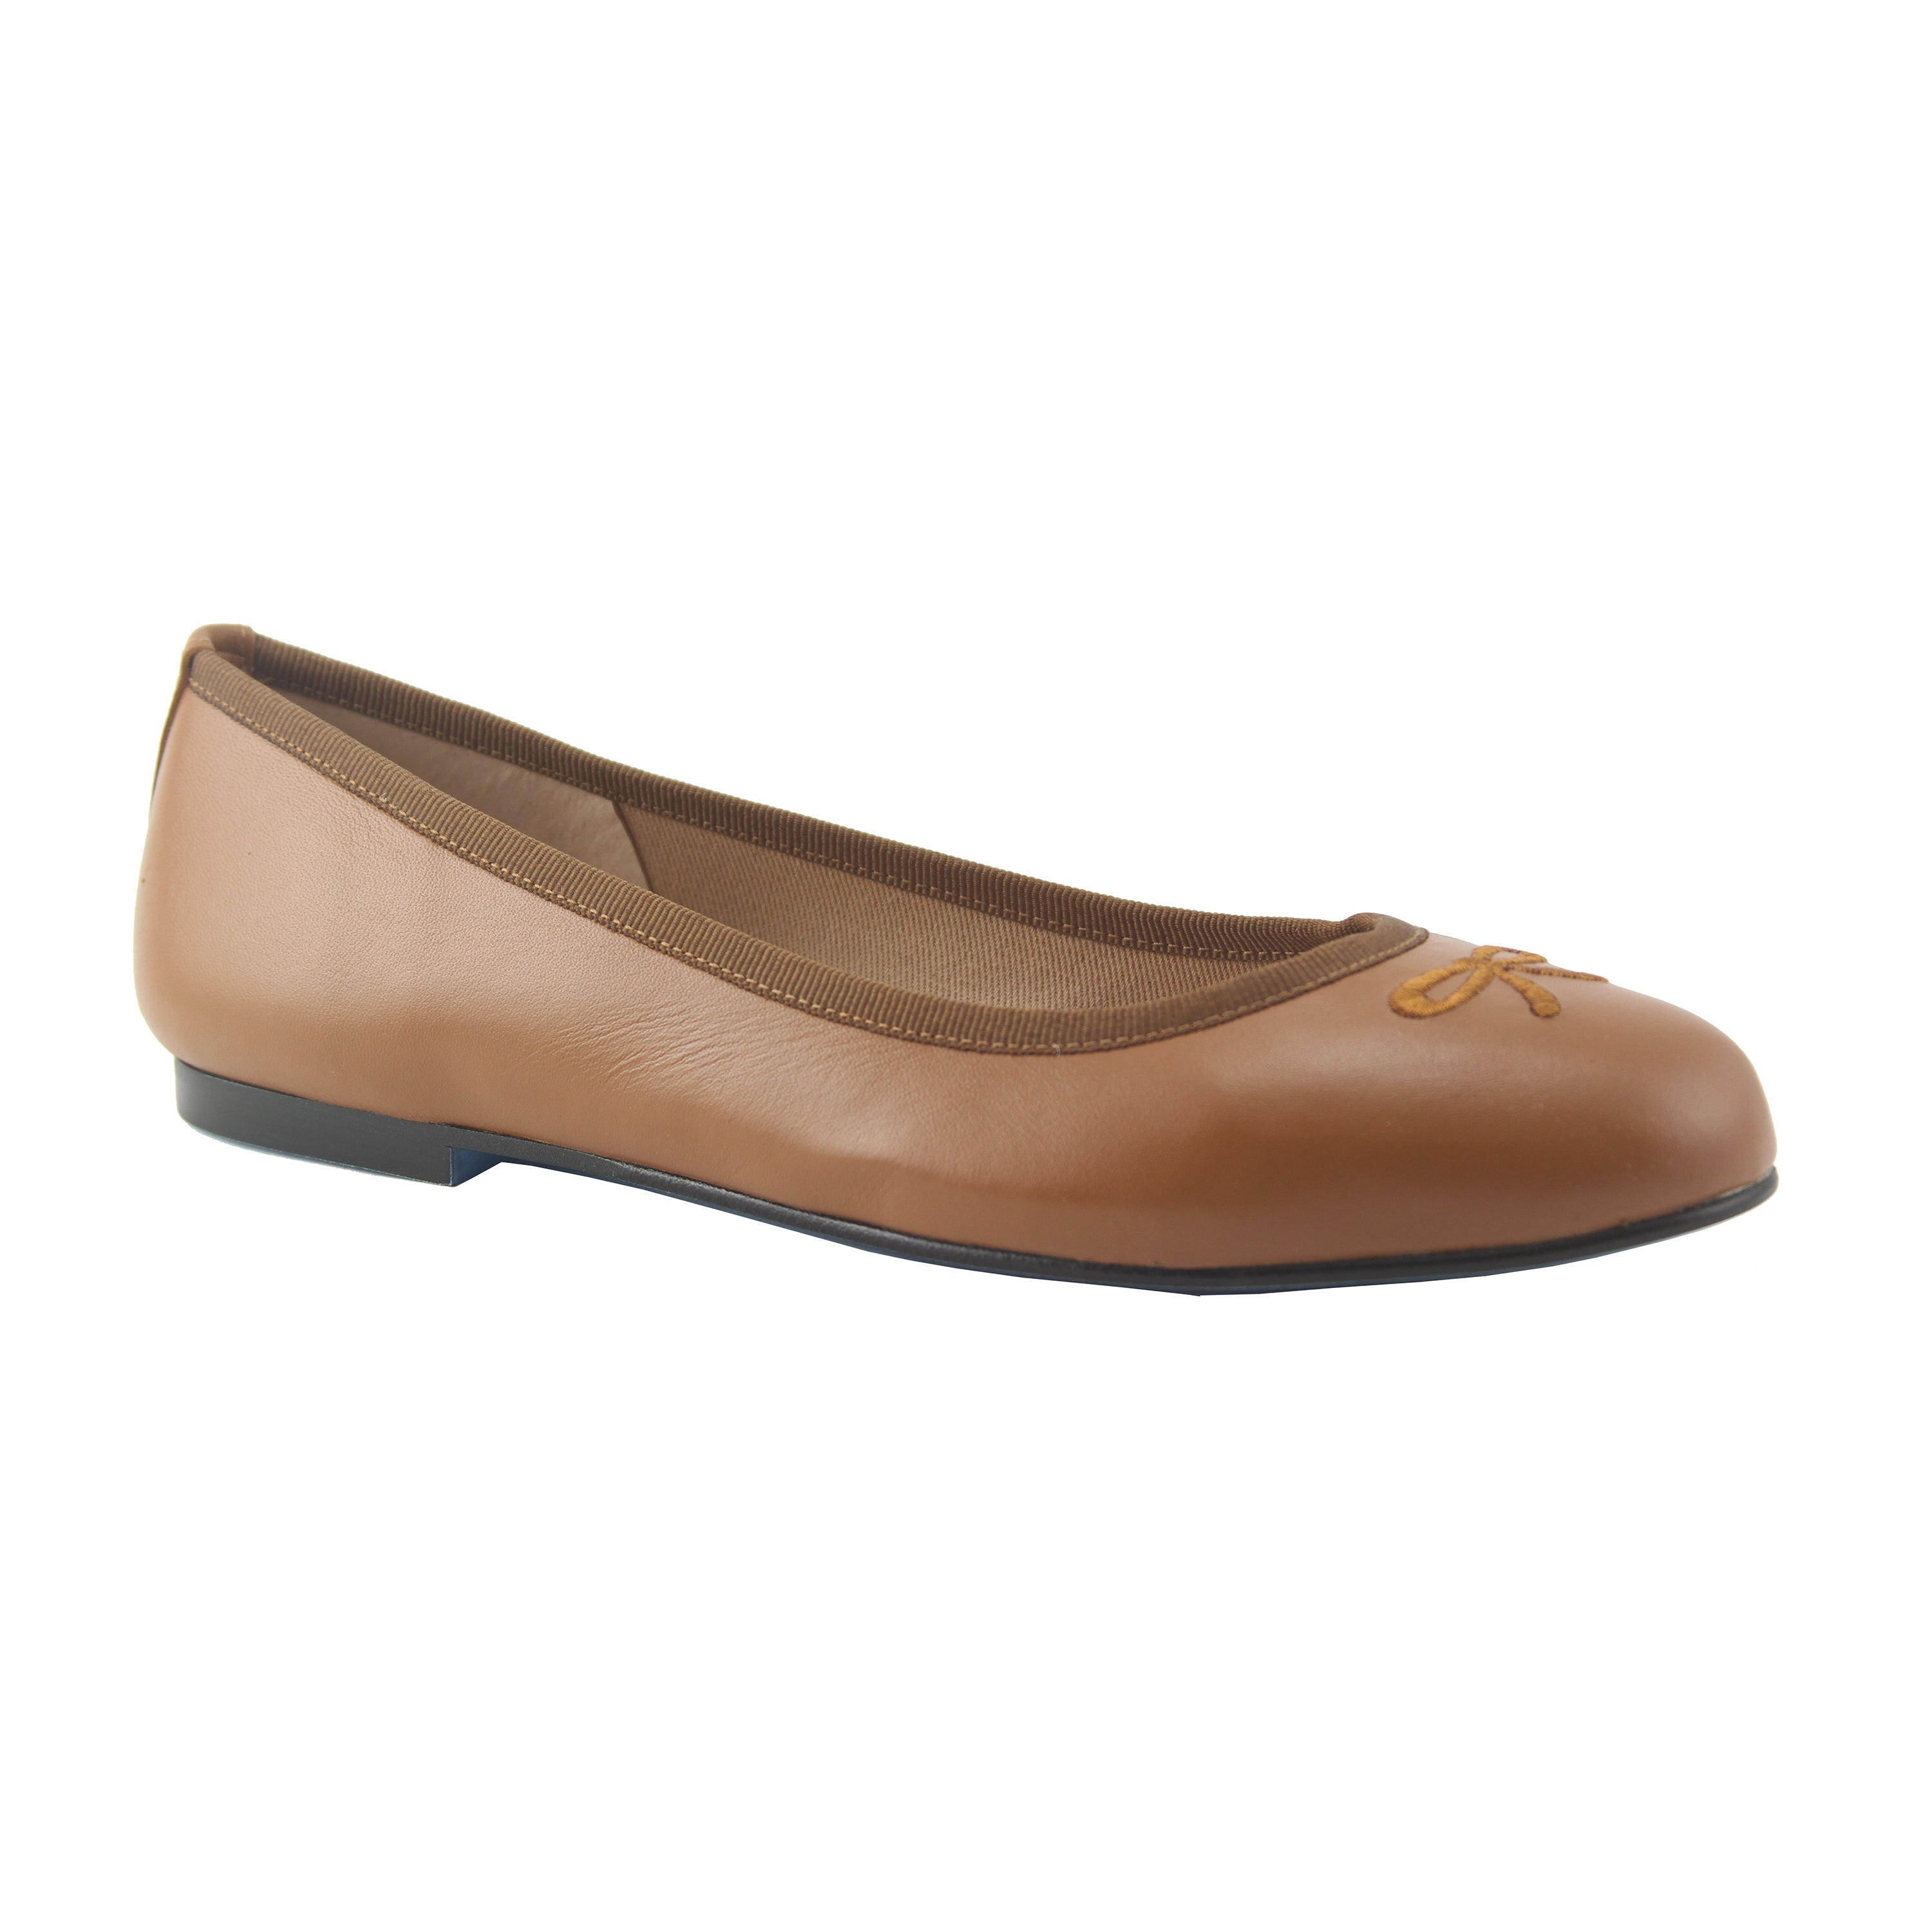 Kathy - Praline Leather